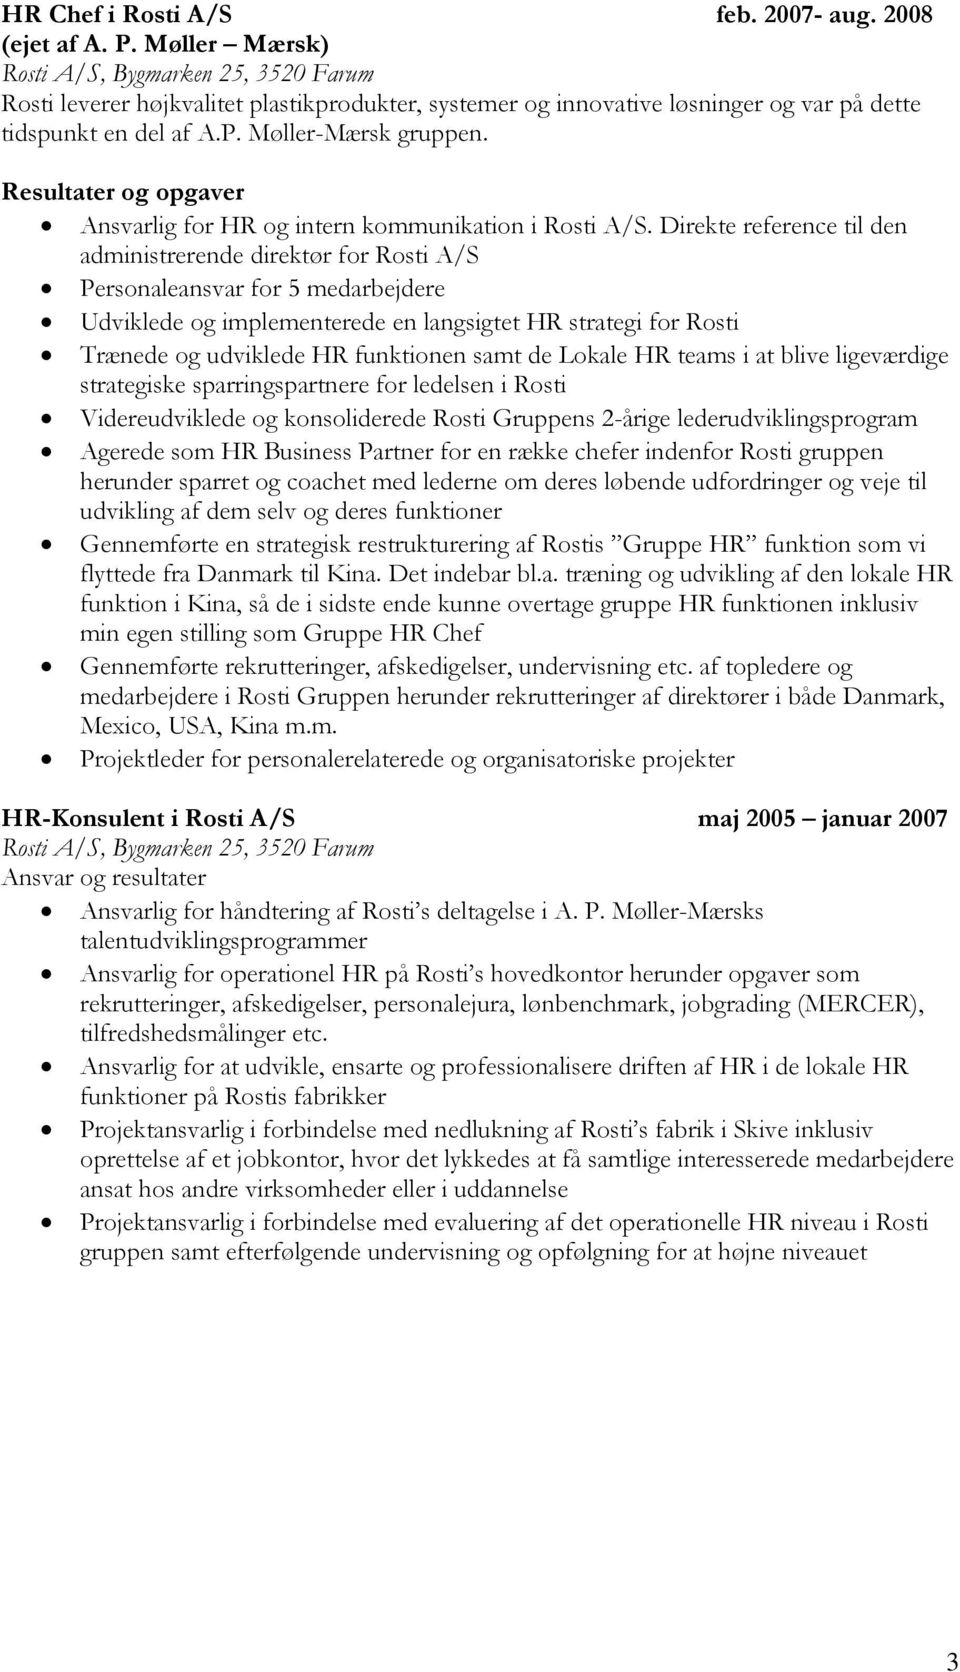 Ansvarlig for HR og intern kommunikation i Rosti A/S.